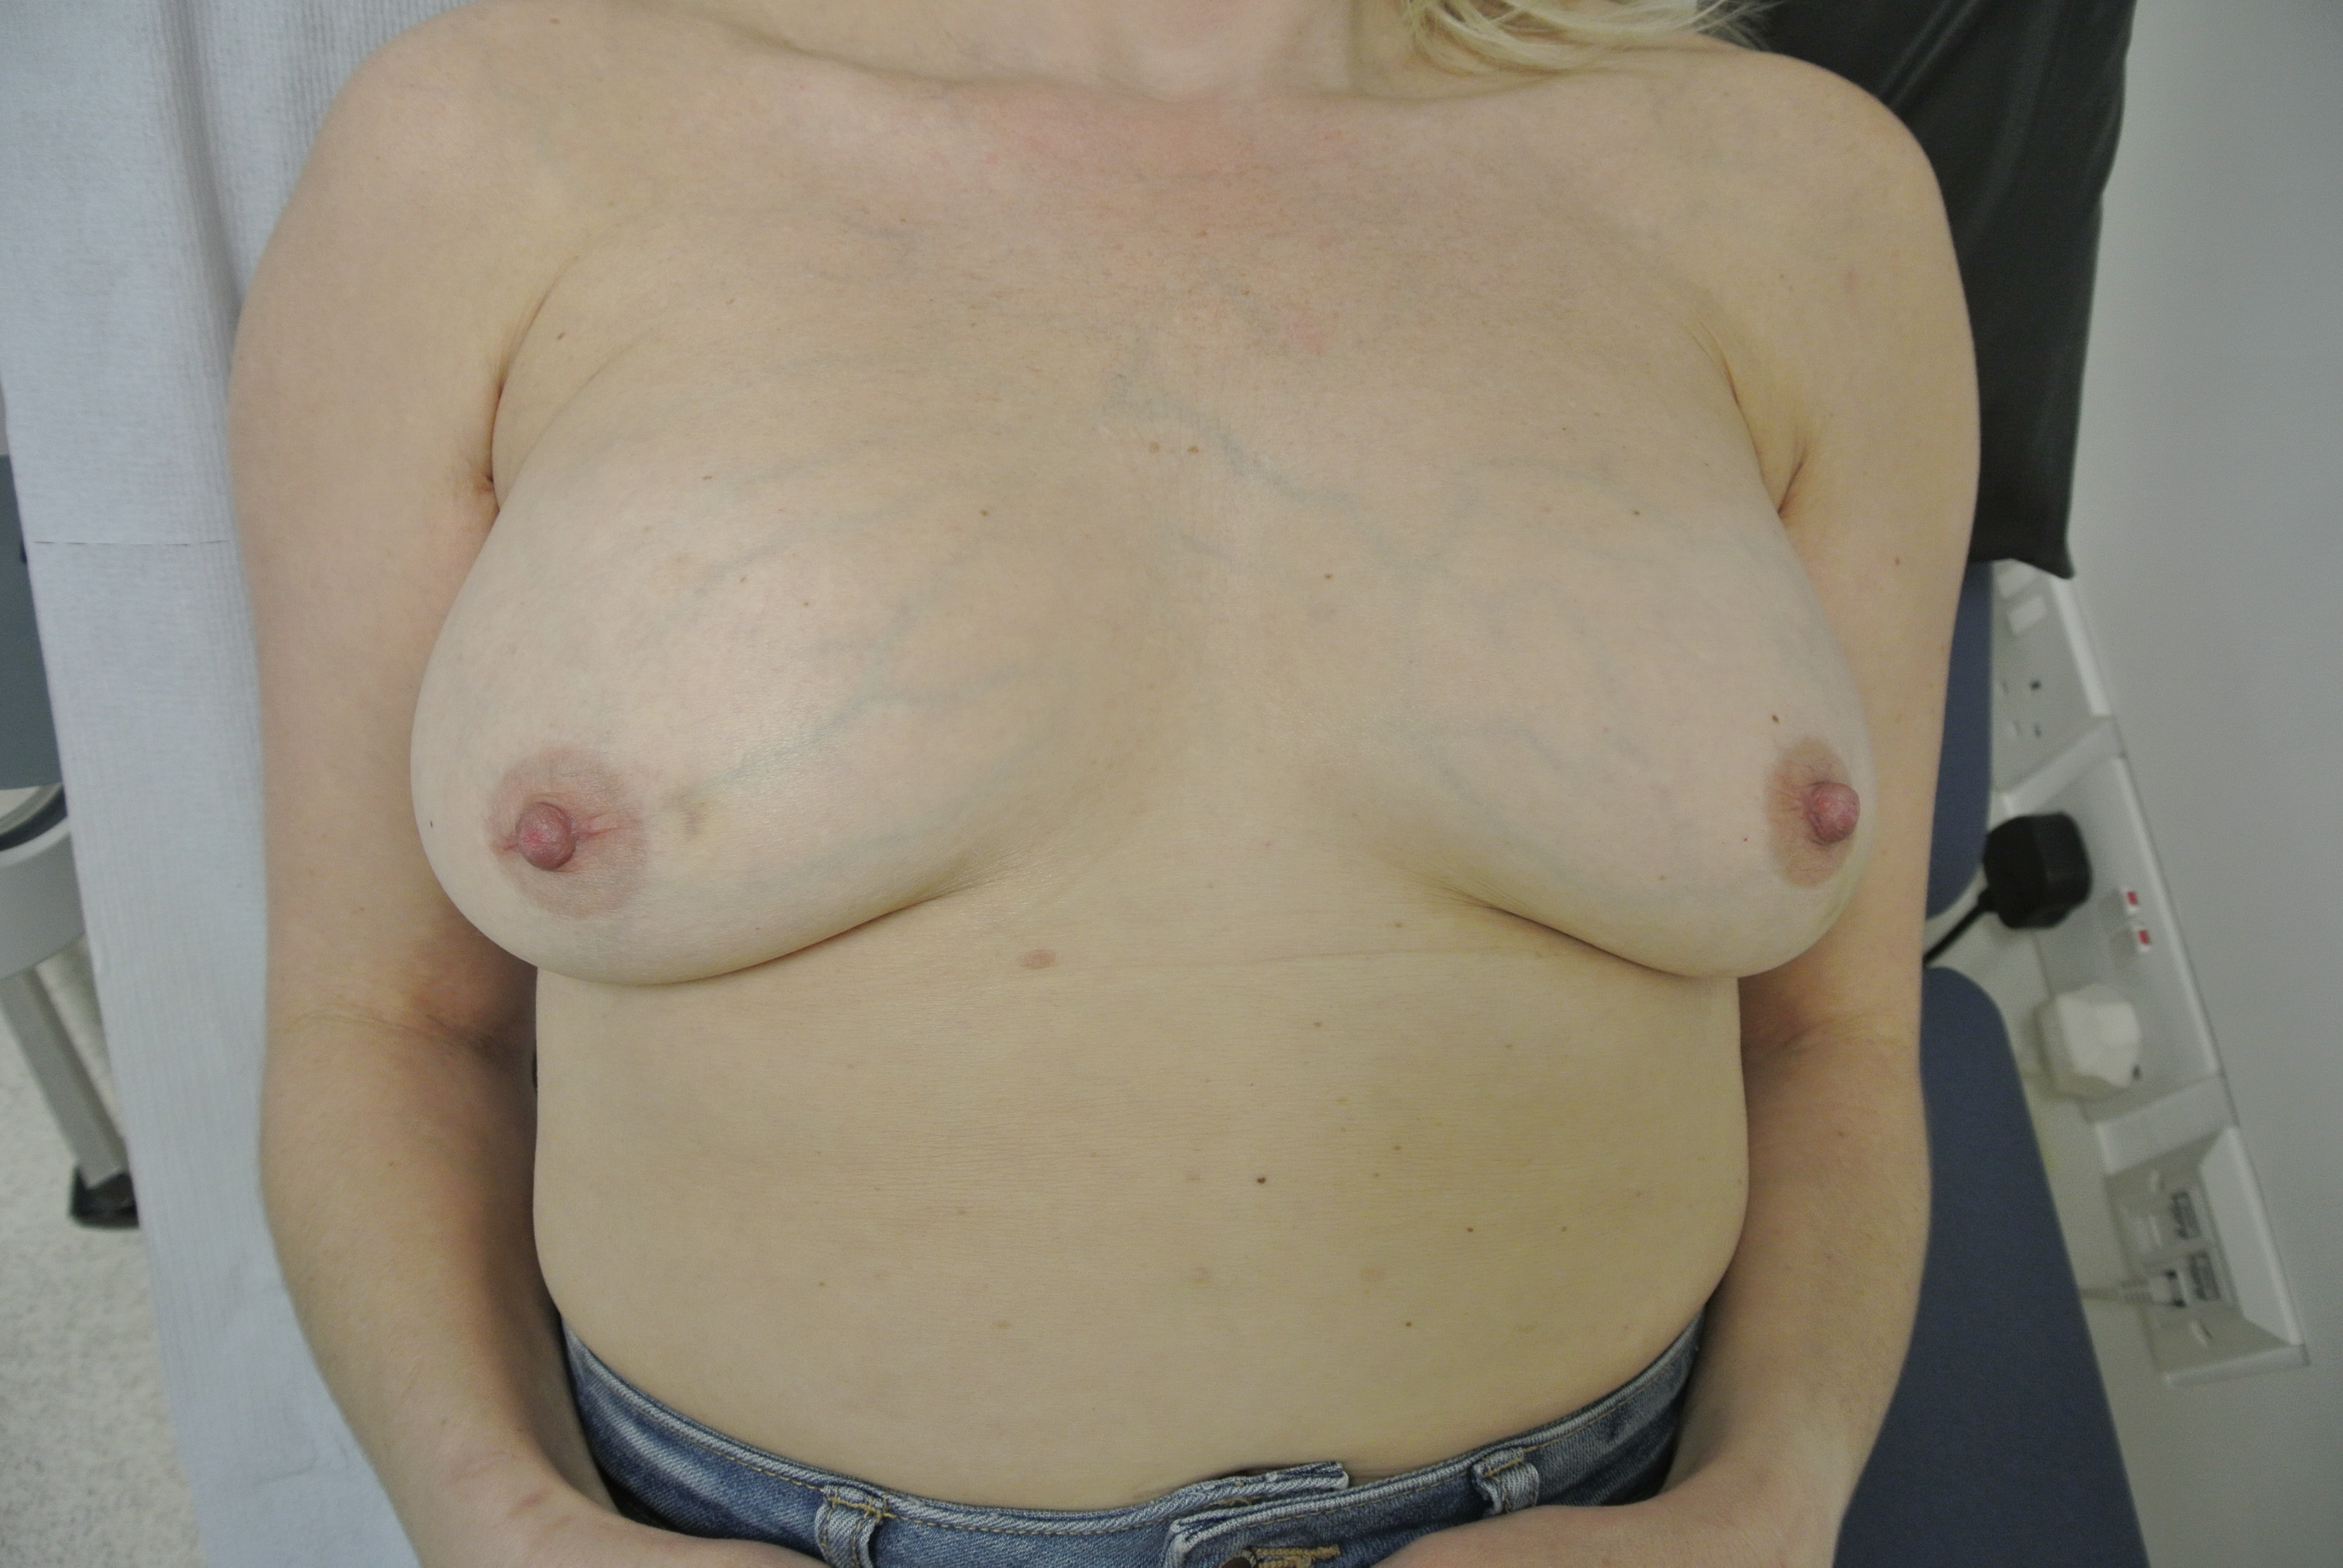 recognition-software-naked-woman-with-inverted-nipples